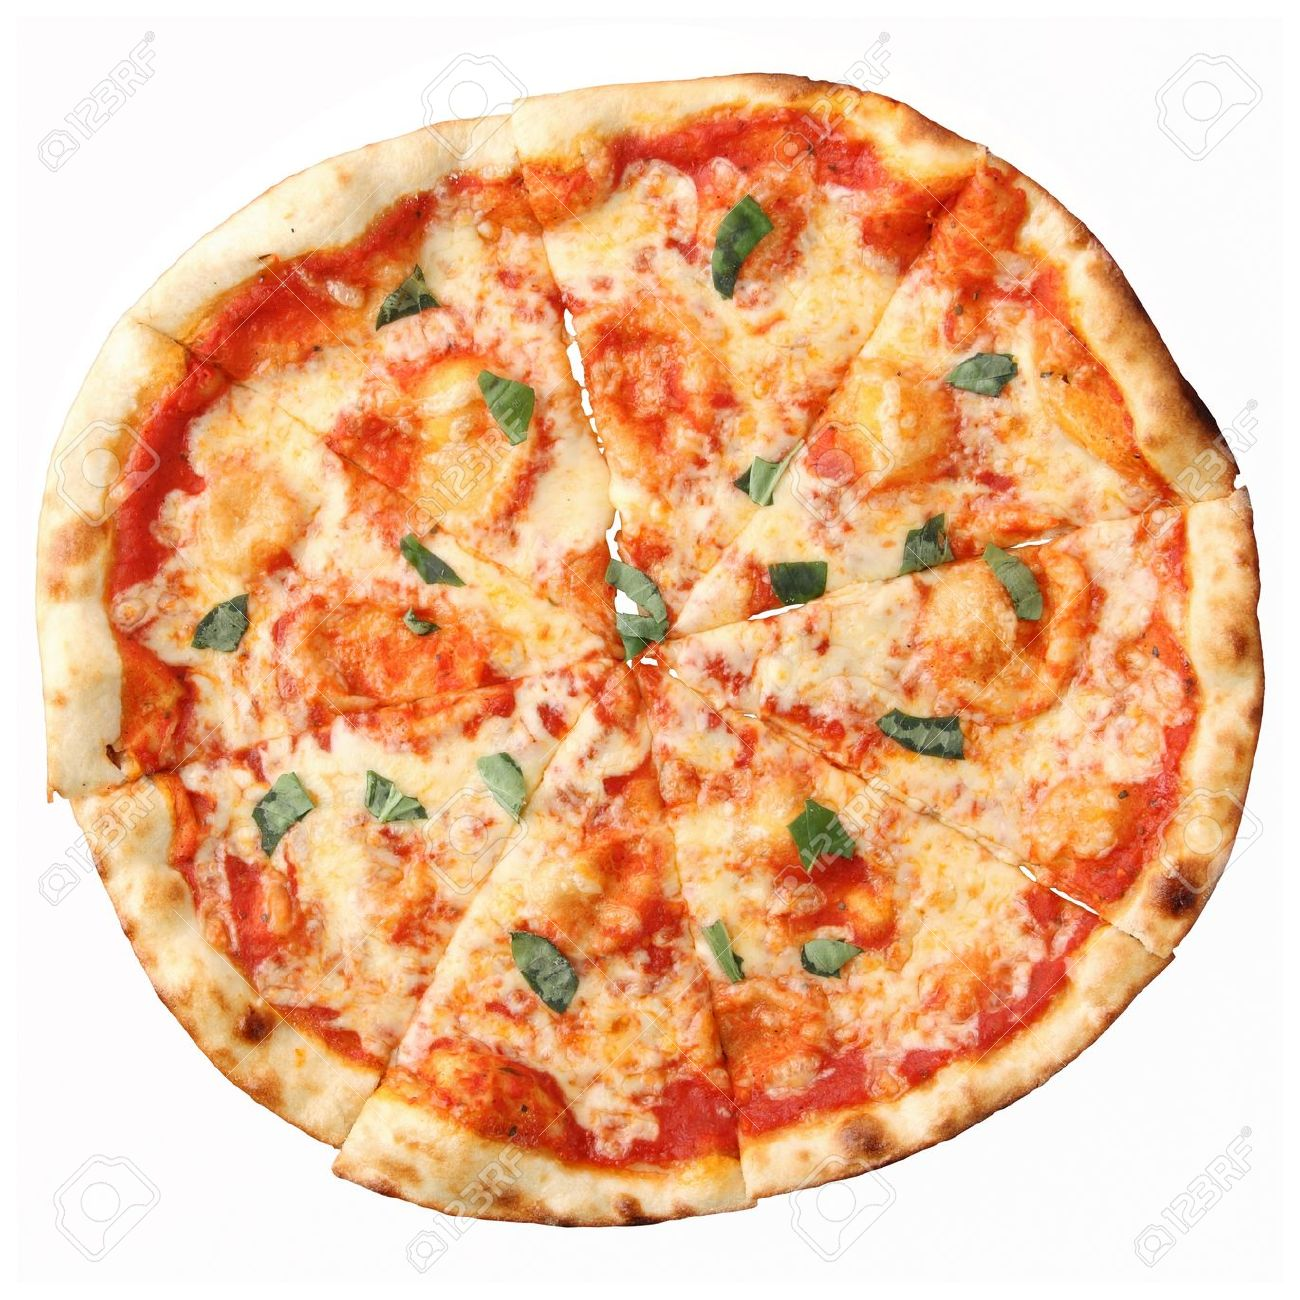 Pizza Margherita Stock Photos Images 4086 Royalty Free